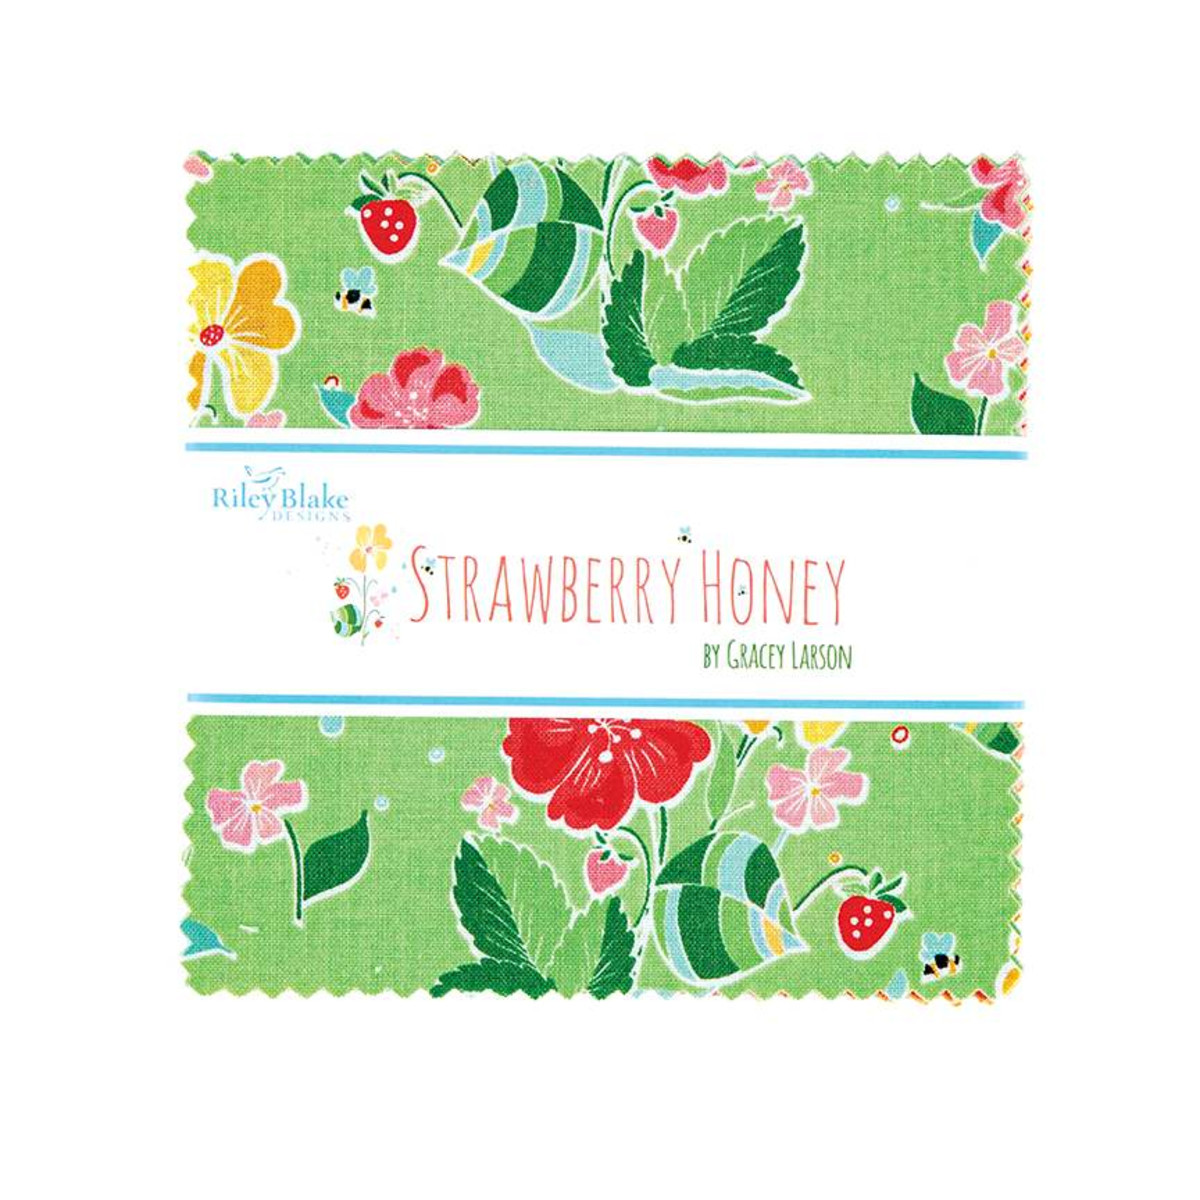 Riley Blake Charm Pack - Strawberry Honey by Gracey Larson